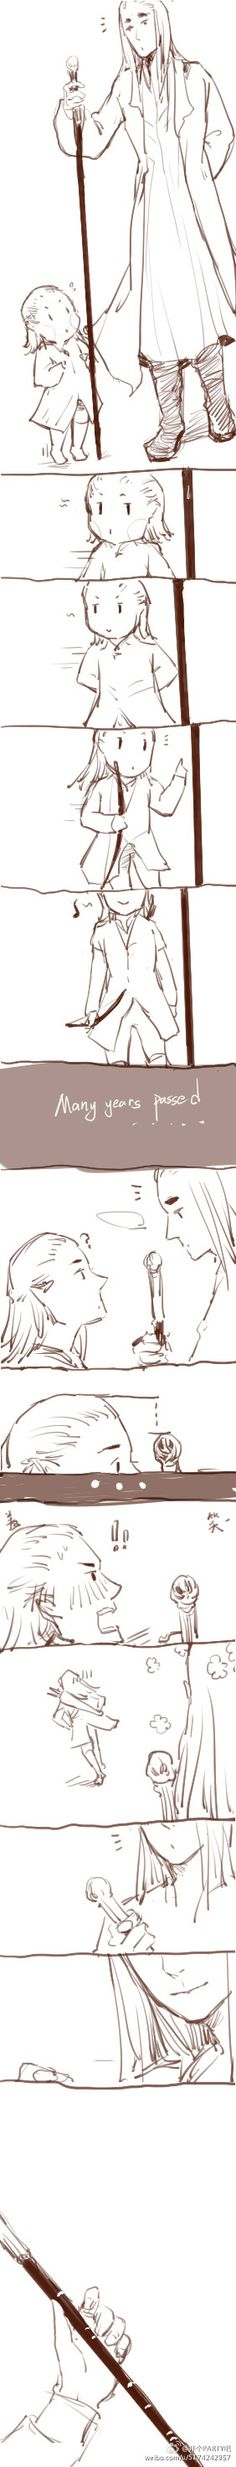 Thranduil and Legolas | Growth in 开个PARTY吧(微博)